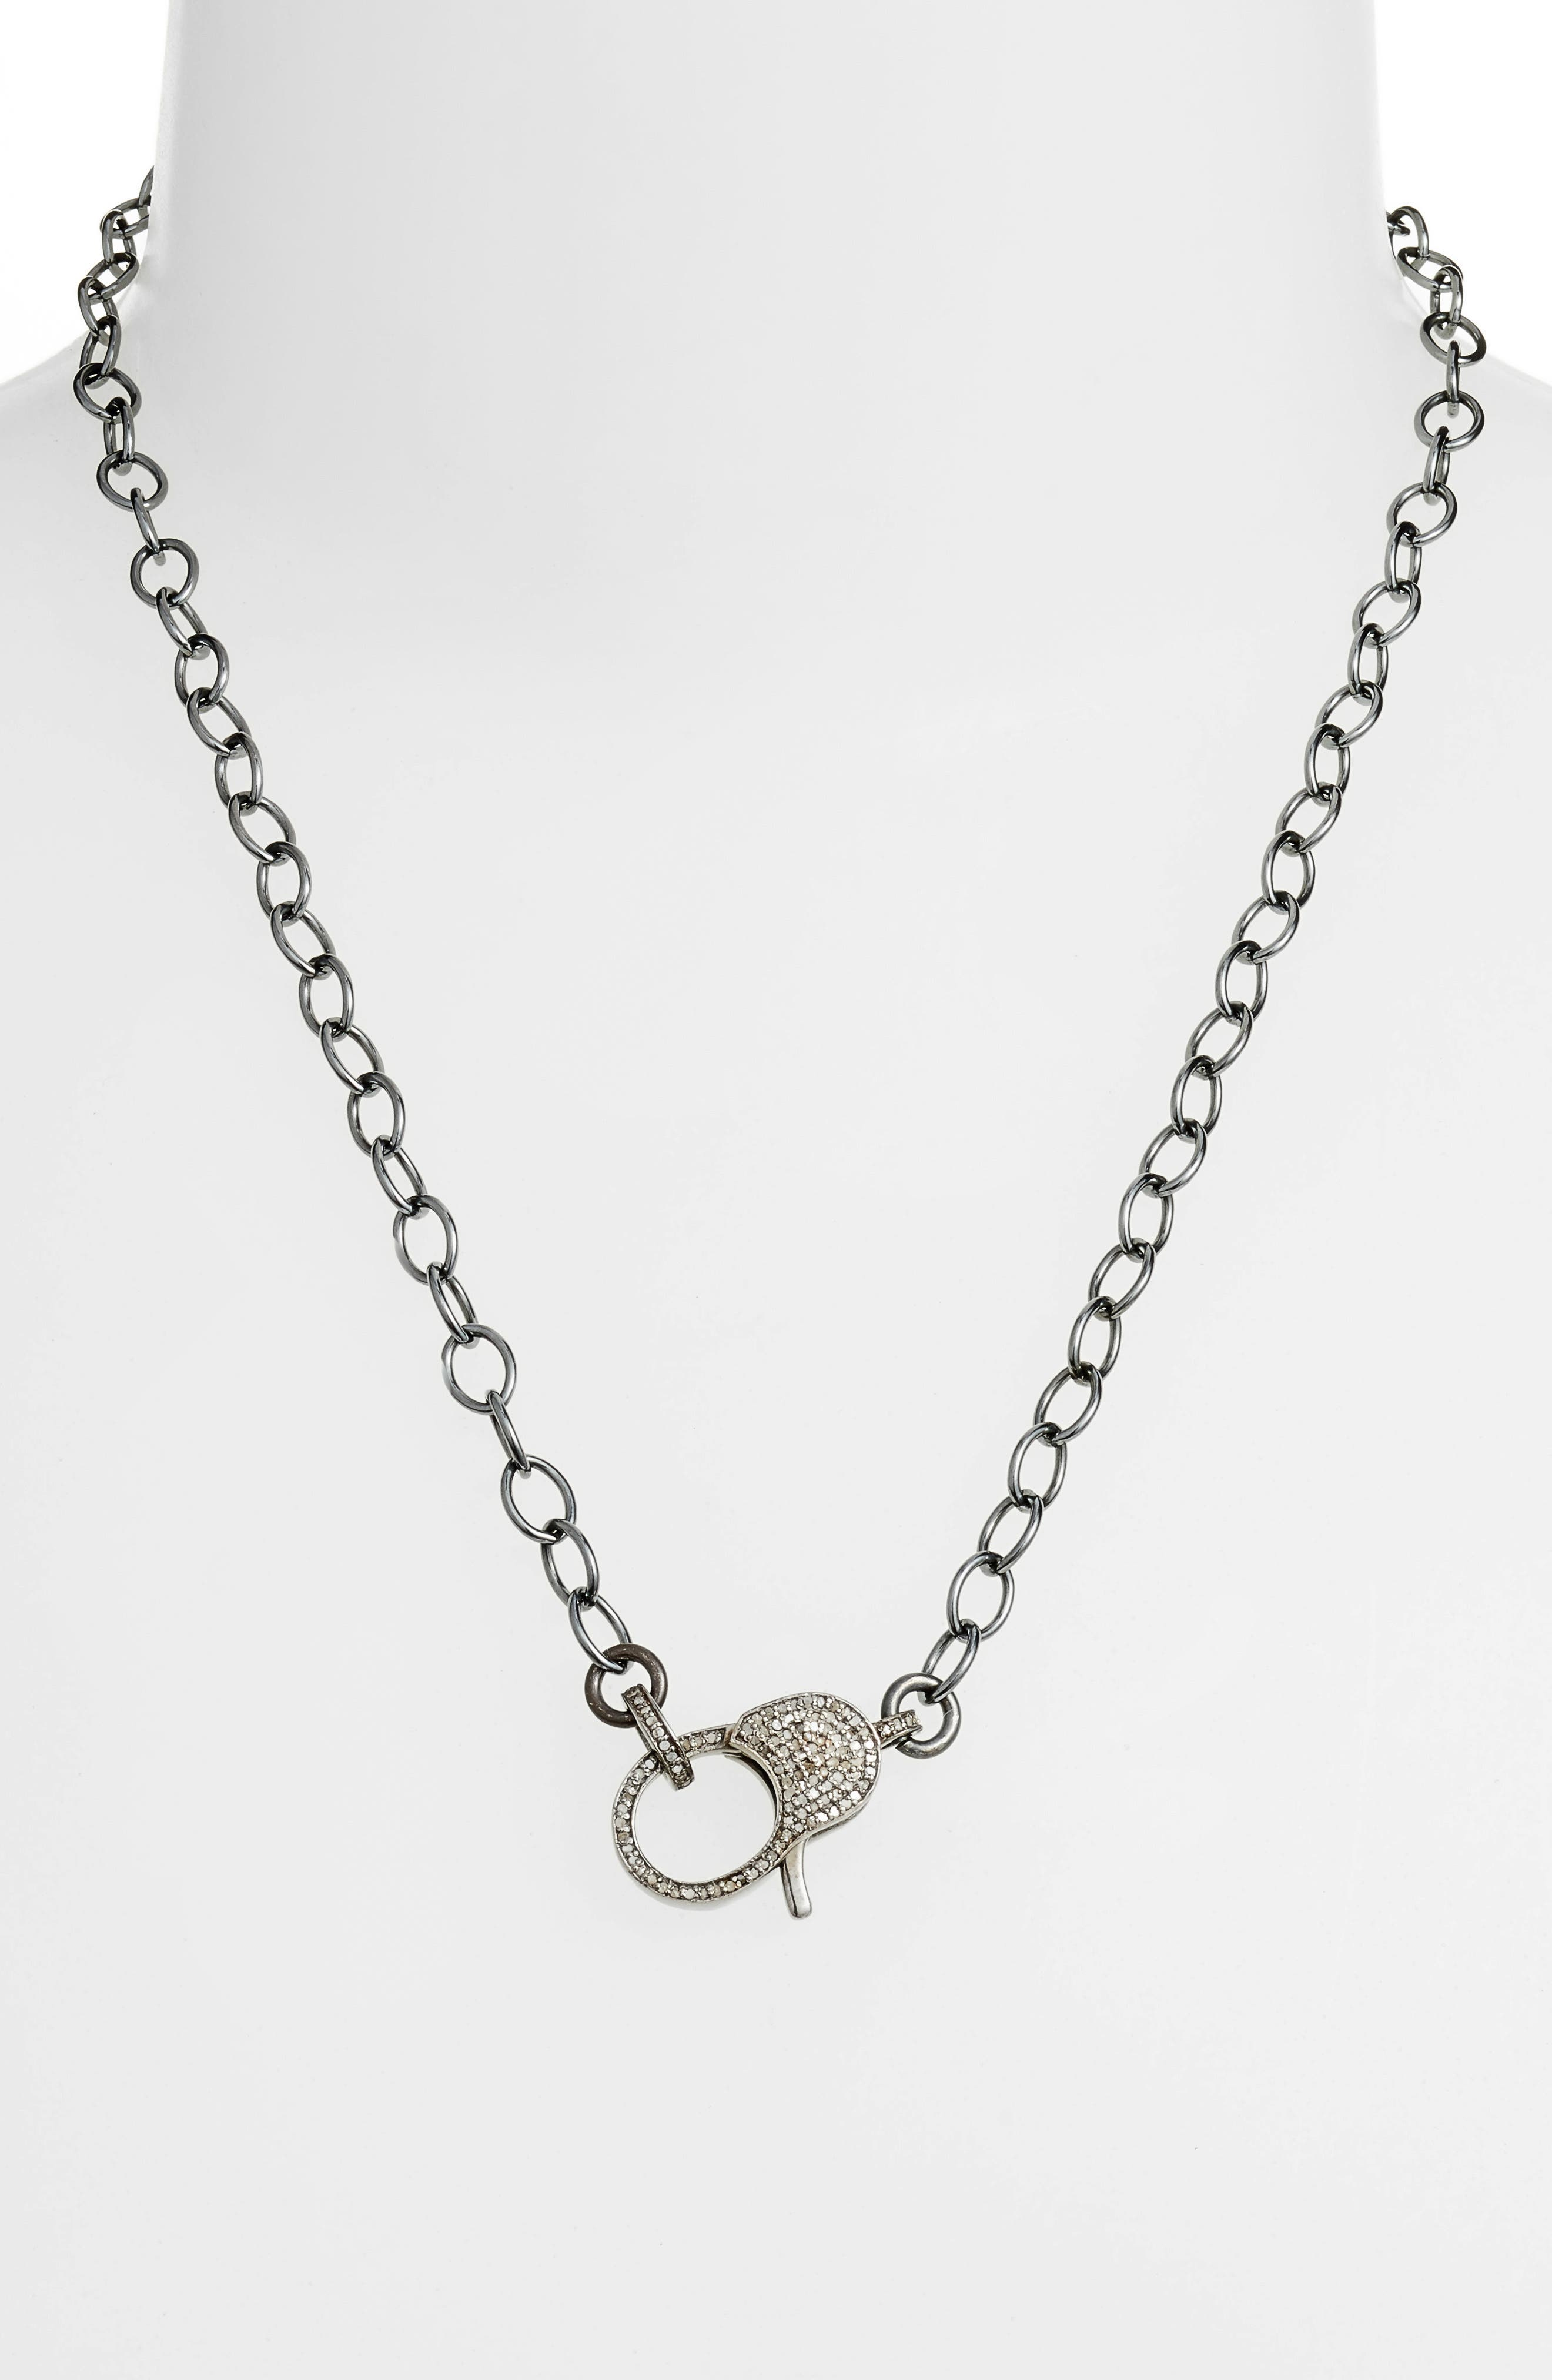 Jane Basch Diamond Pavé Lock Chain Necklace,                             Main thumbnail 1, color,                             SILVER